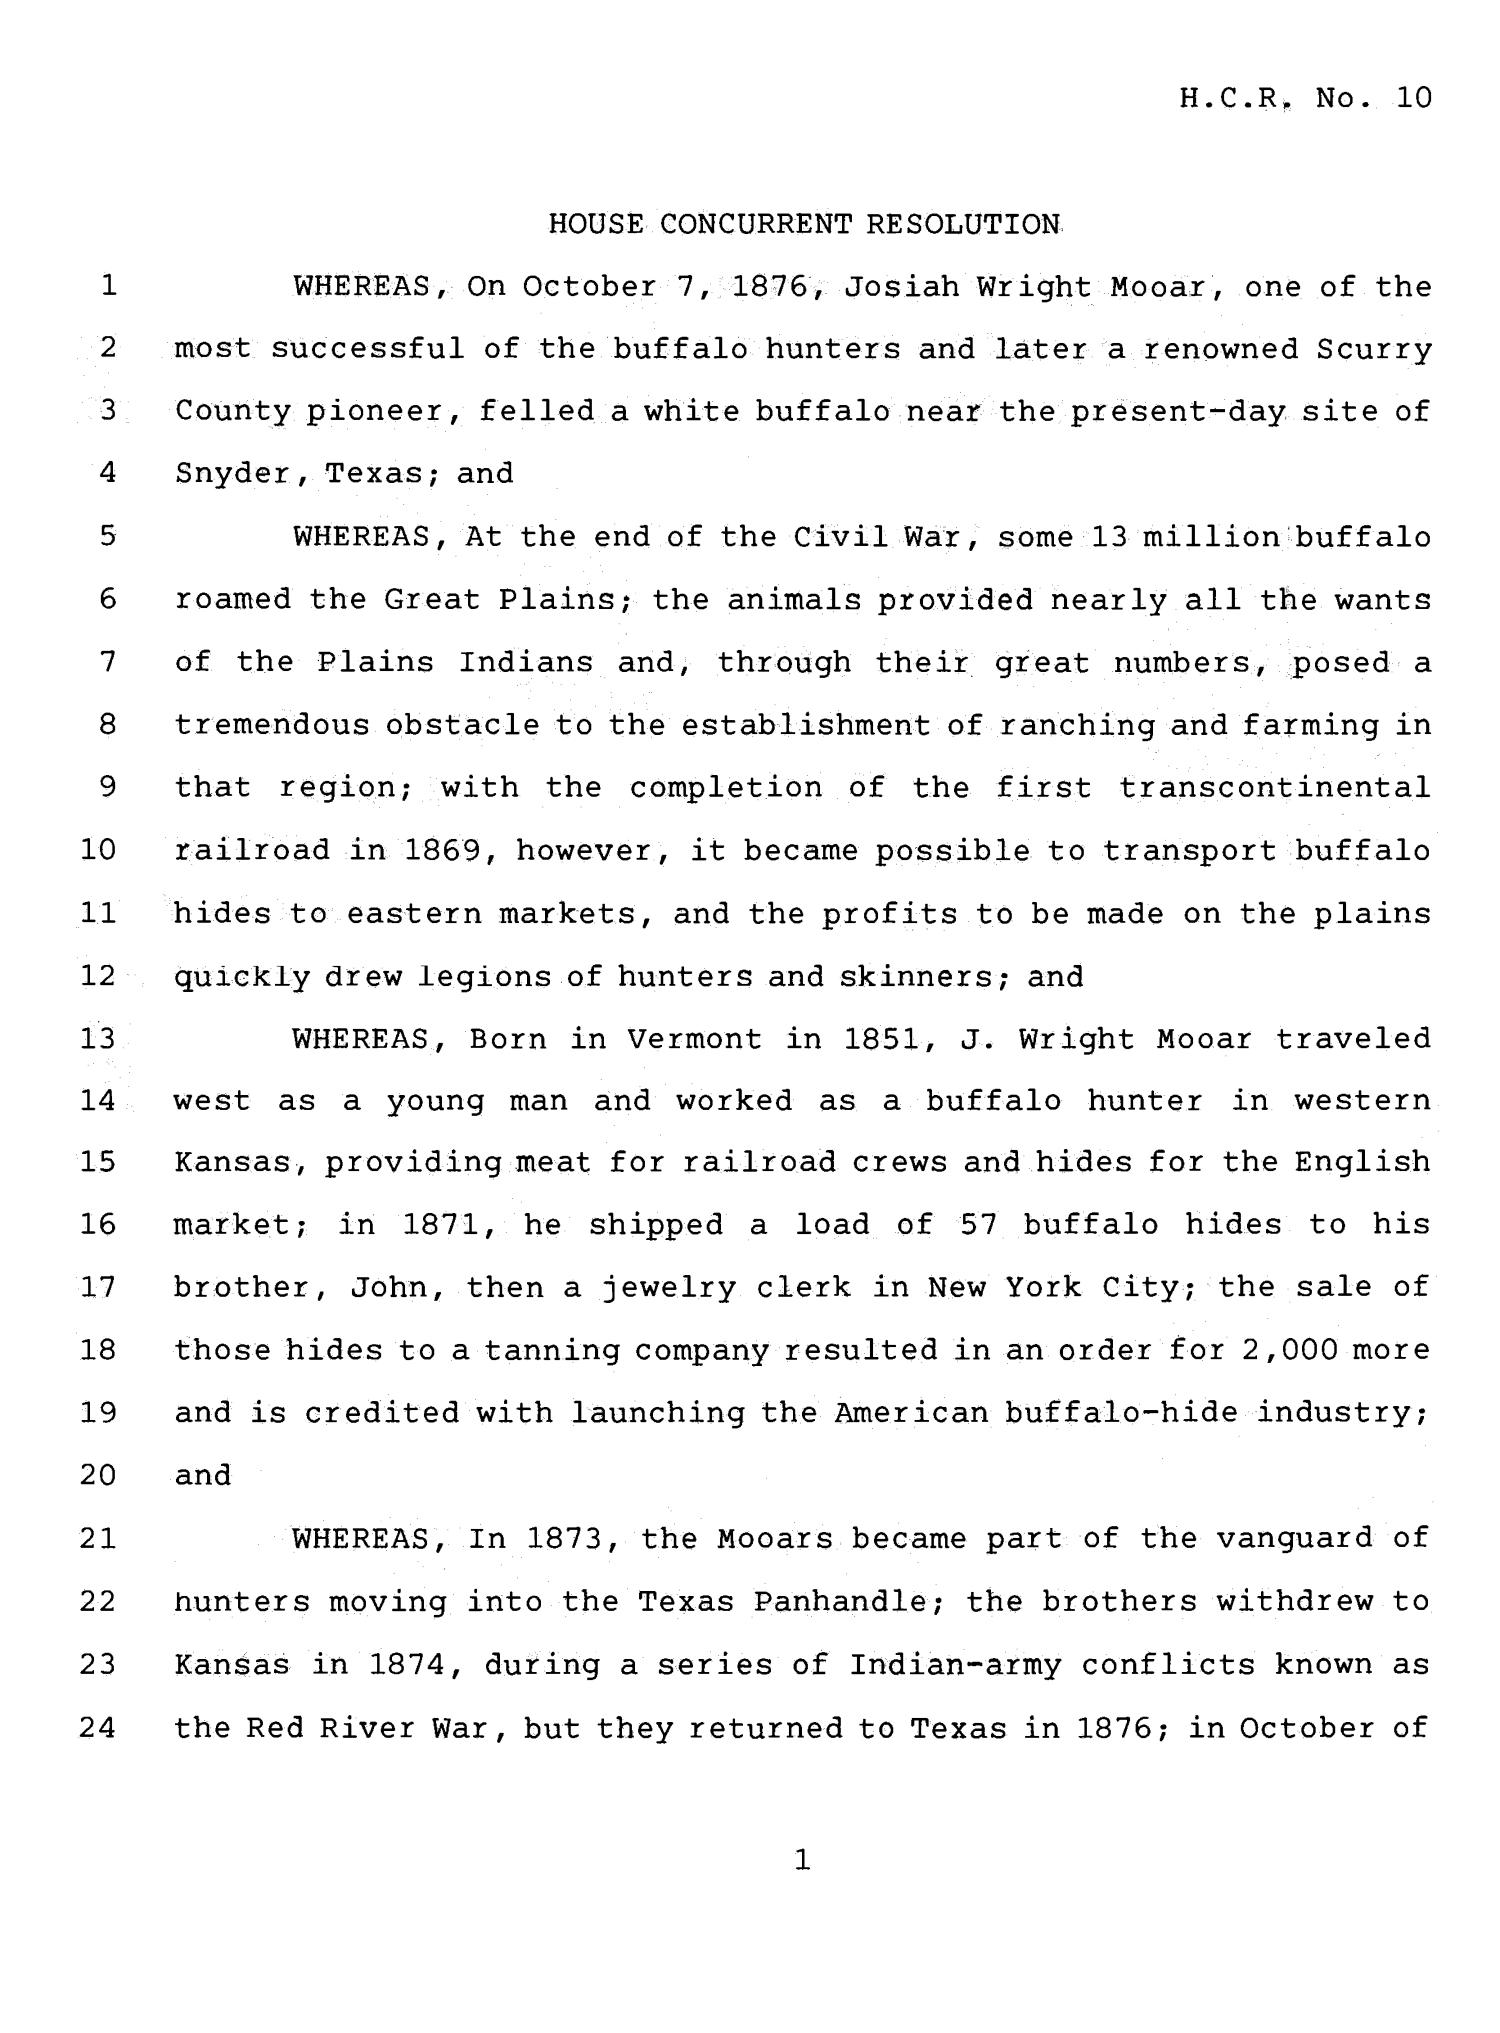 78th Texas Legislature, Fourth Called Session, House Concurrent Resolution 10                                                                                                      [Sequence #]: 1 of 5